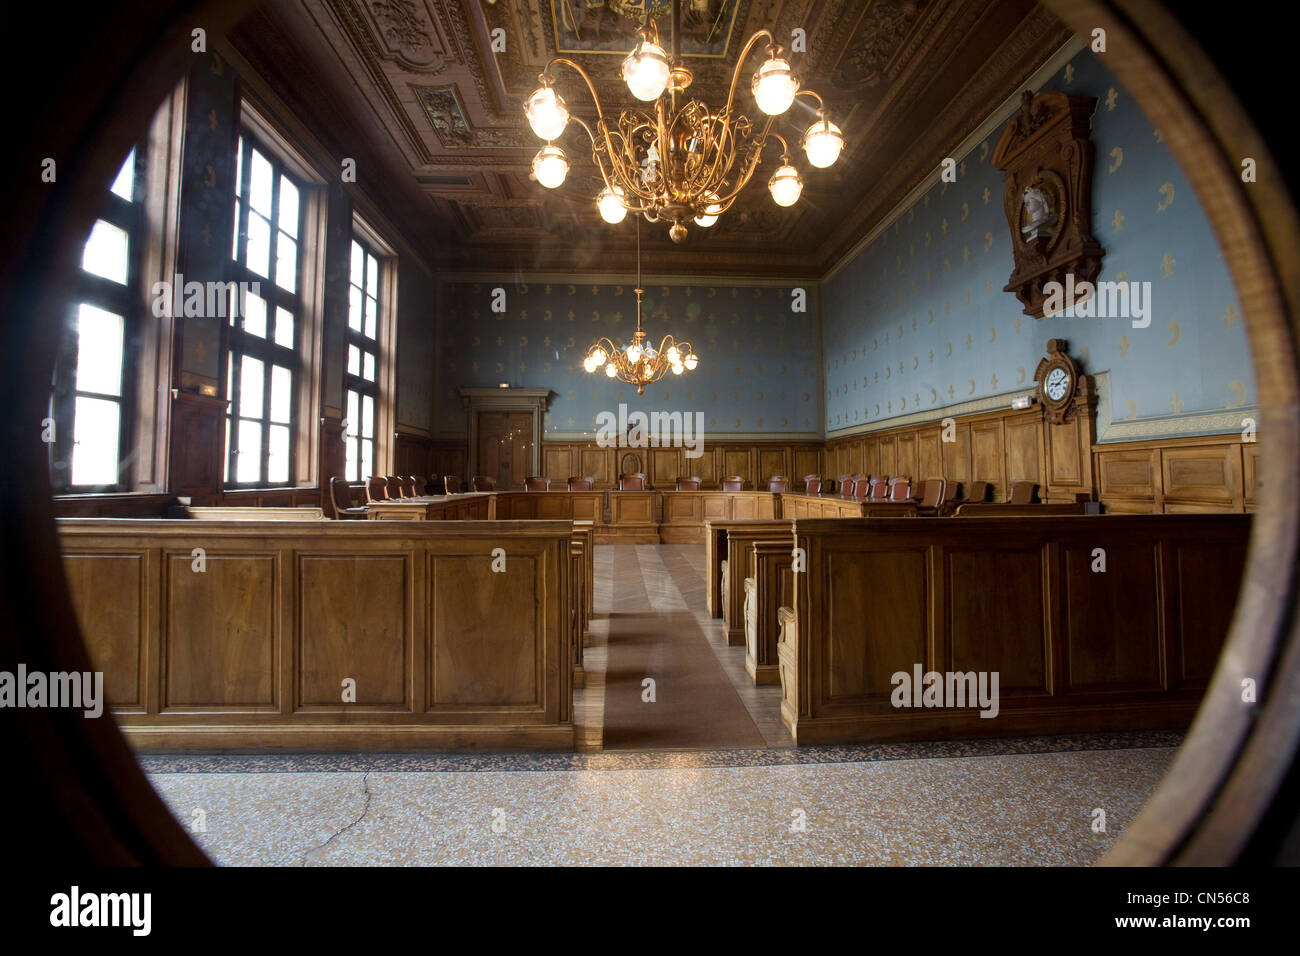 France, Isere, Grenoble, the former courtroom inside the 15th century old Dauphine Parliament, it was the Courthouse - Stock Image